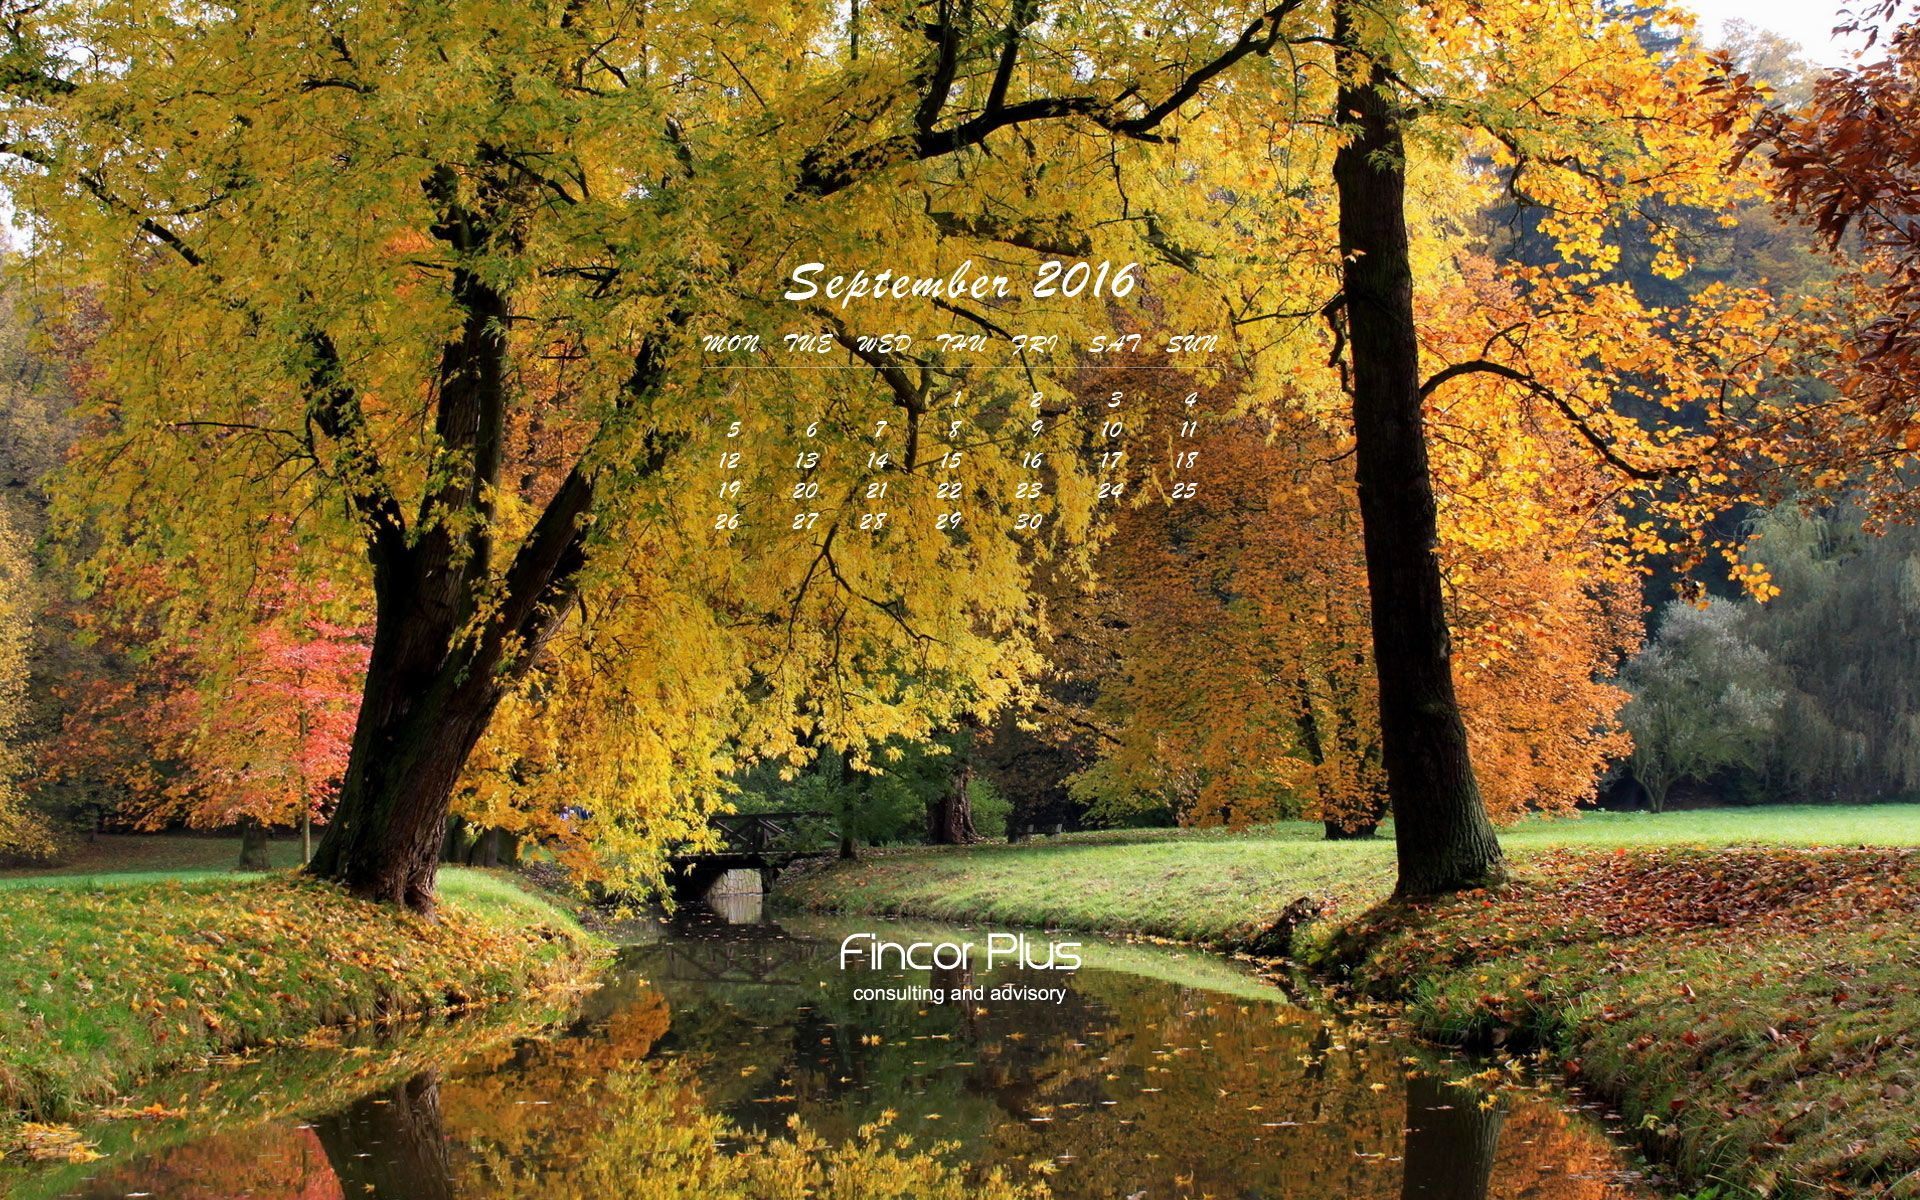 FincorPlus wallpaper-calendar September 2016